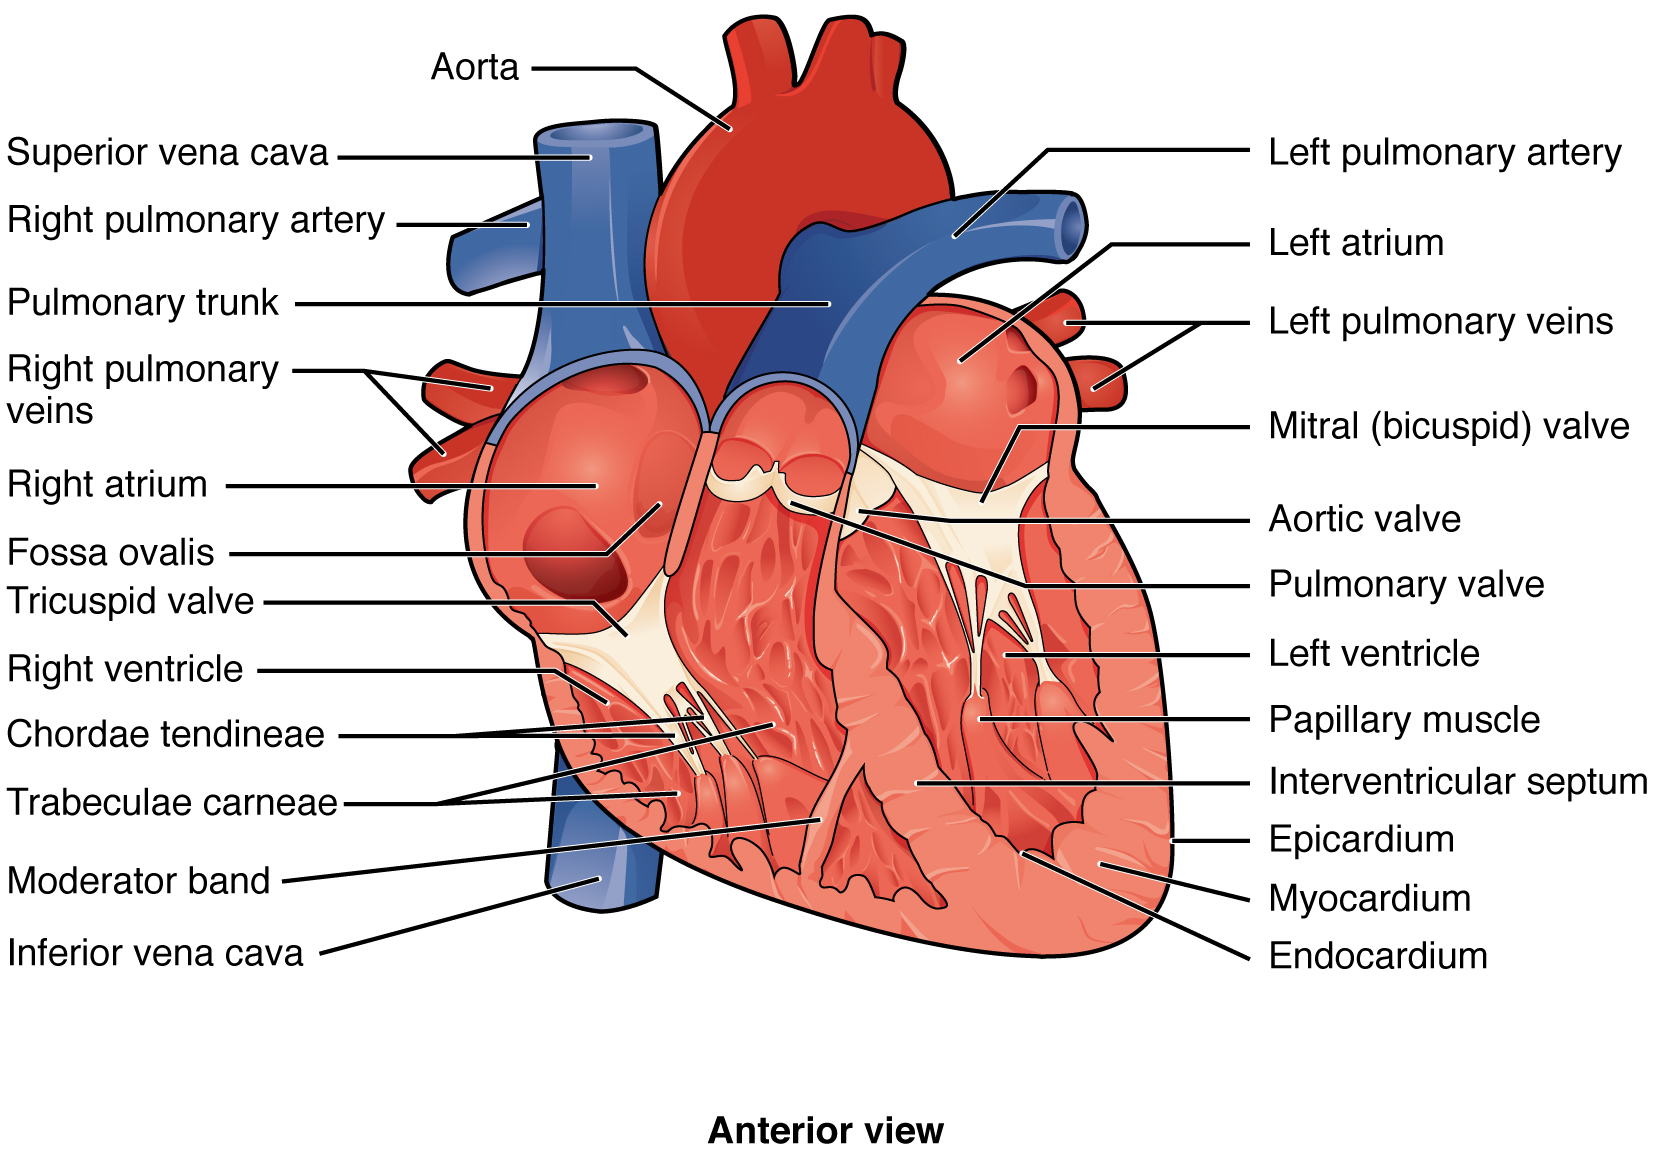 Heart Anatomy Diagram Reservoir - DIY Enthusiasts Wiring Diagrams •